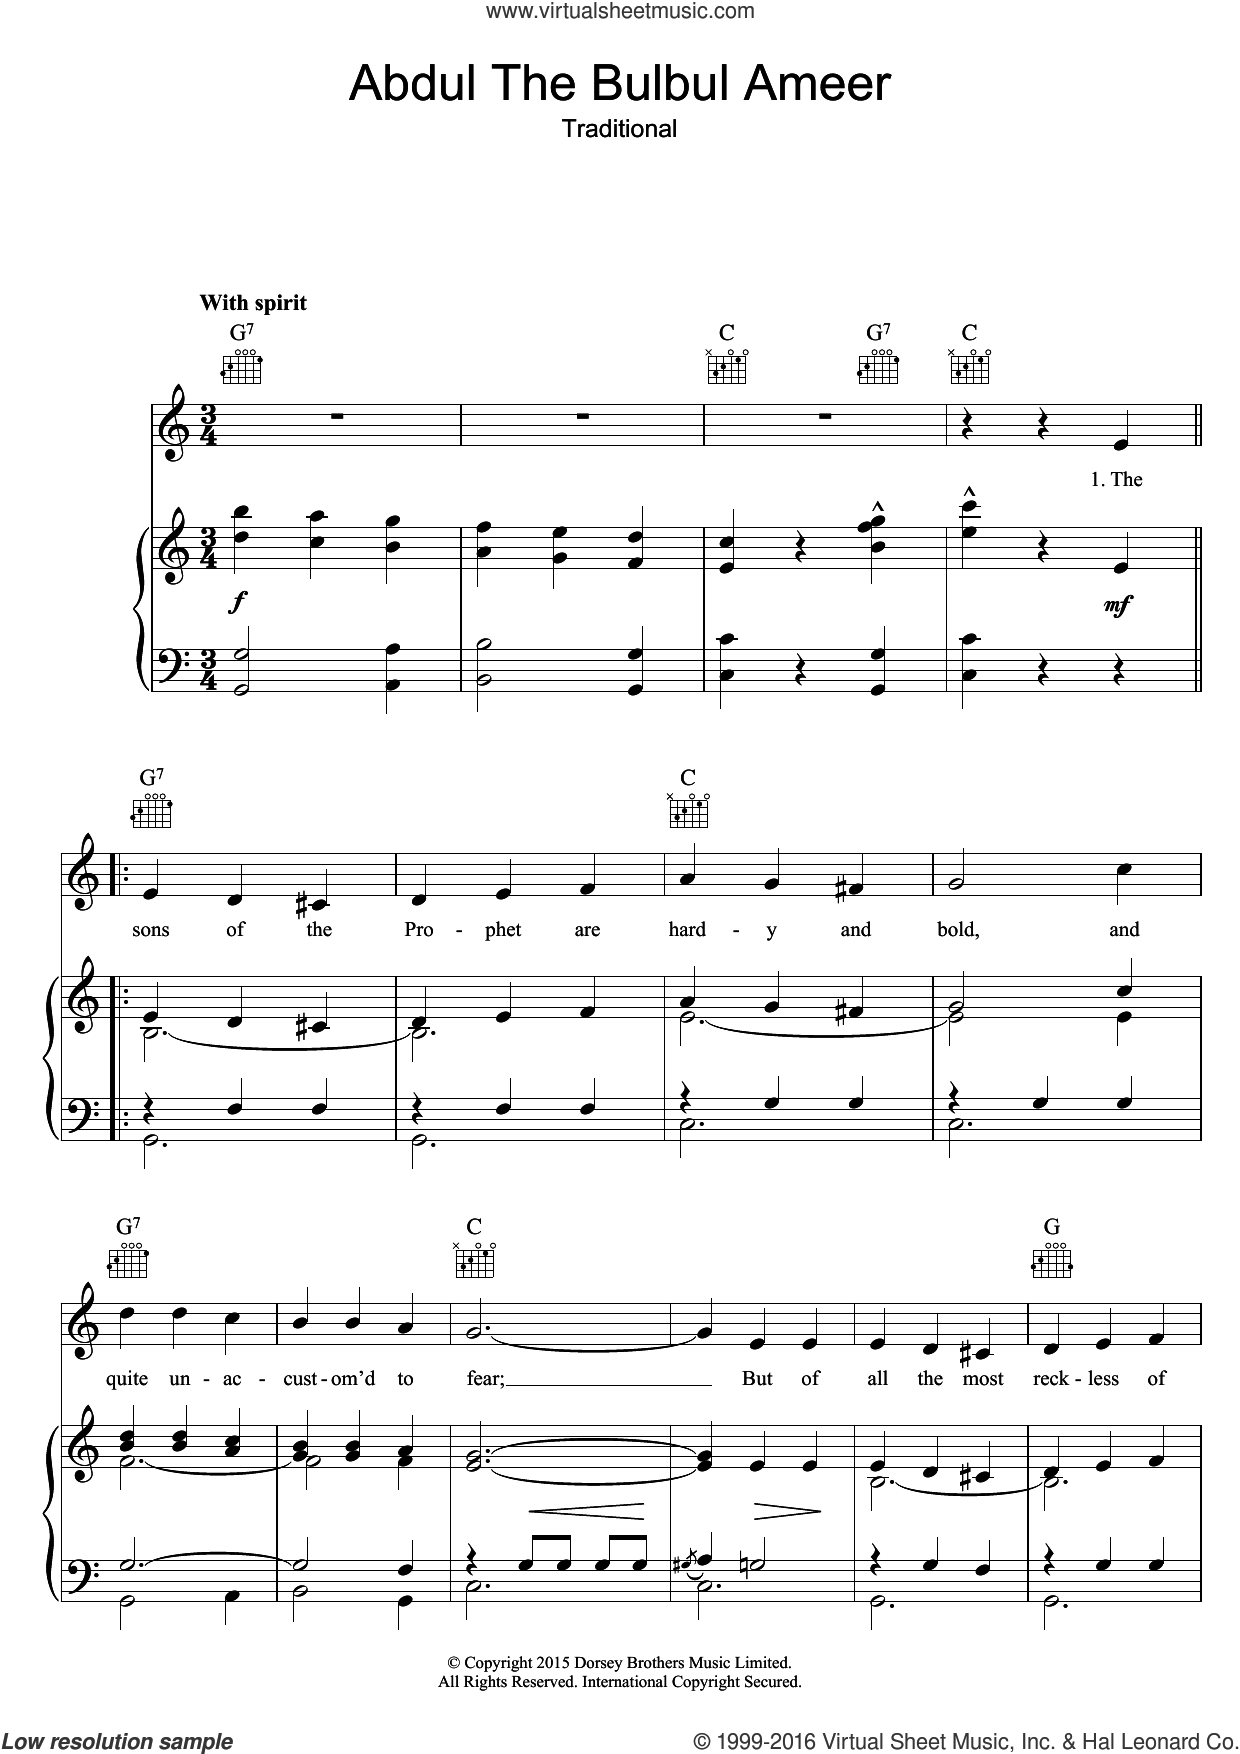 Abdul The Bulbul Ameer sheet music for voice, piano or guitar. Score Image Preview.